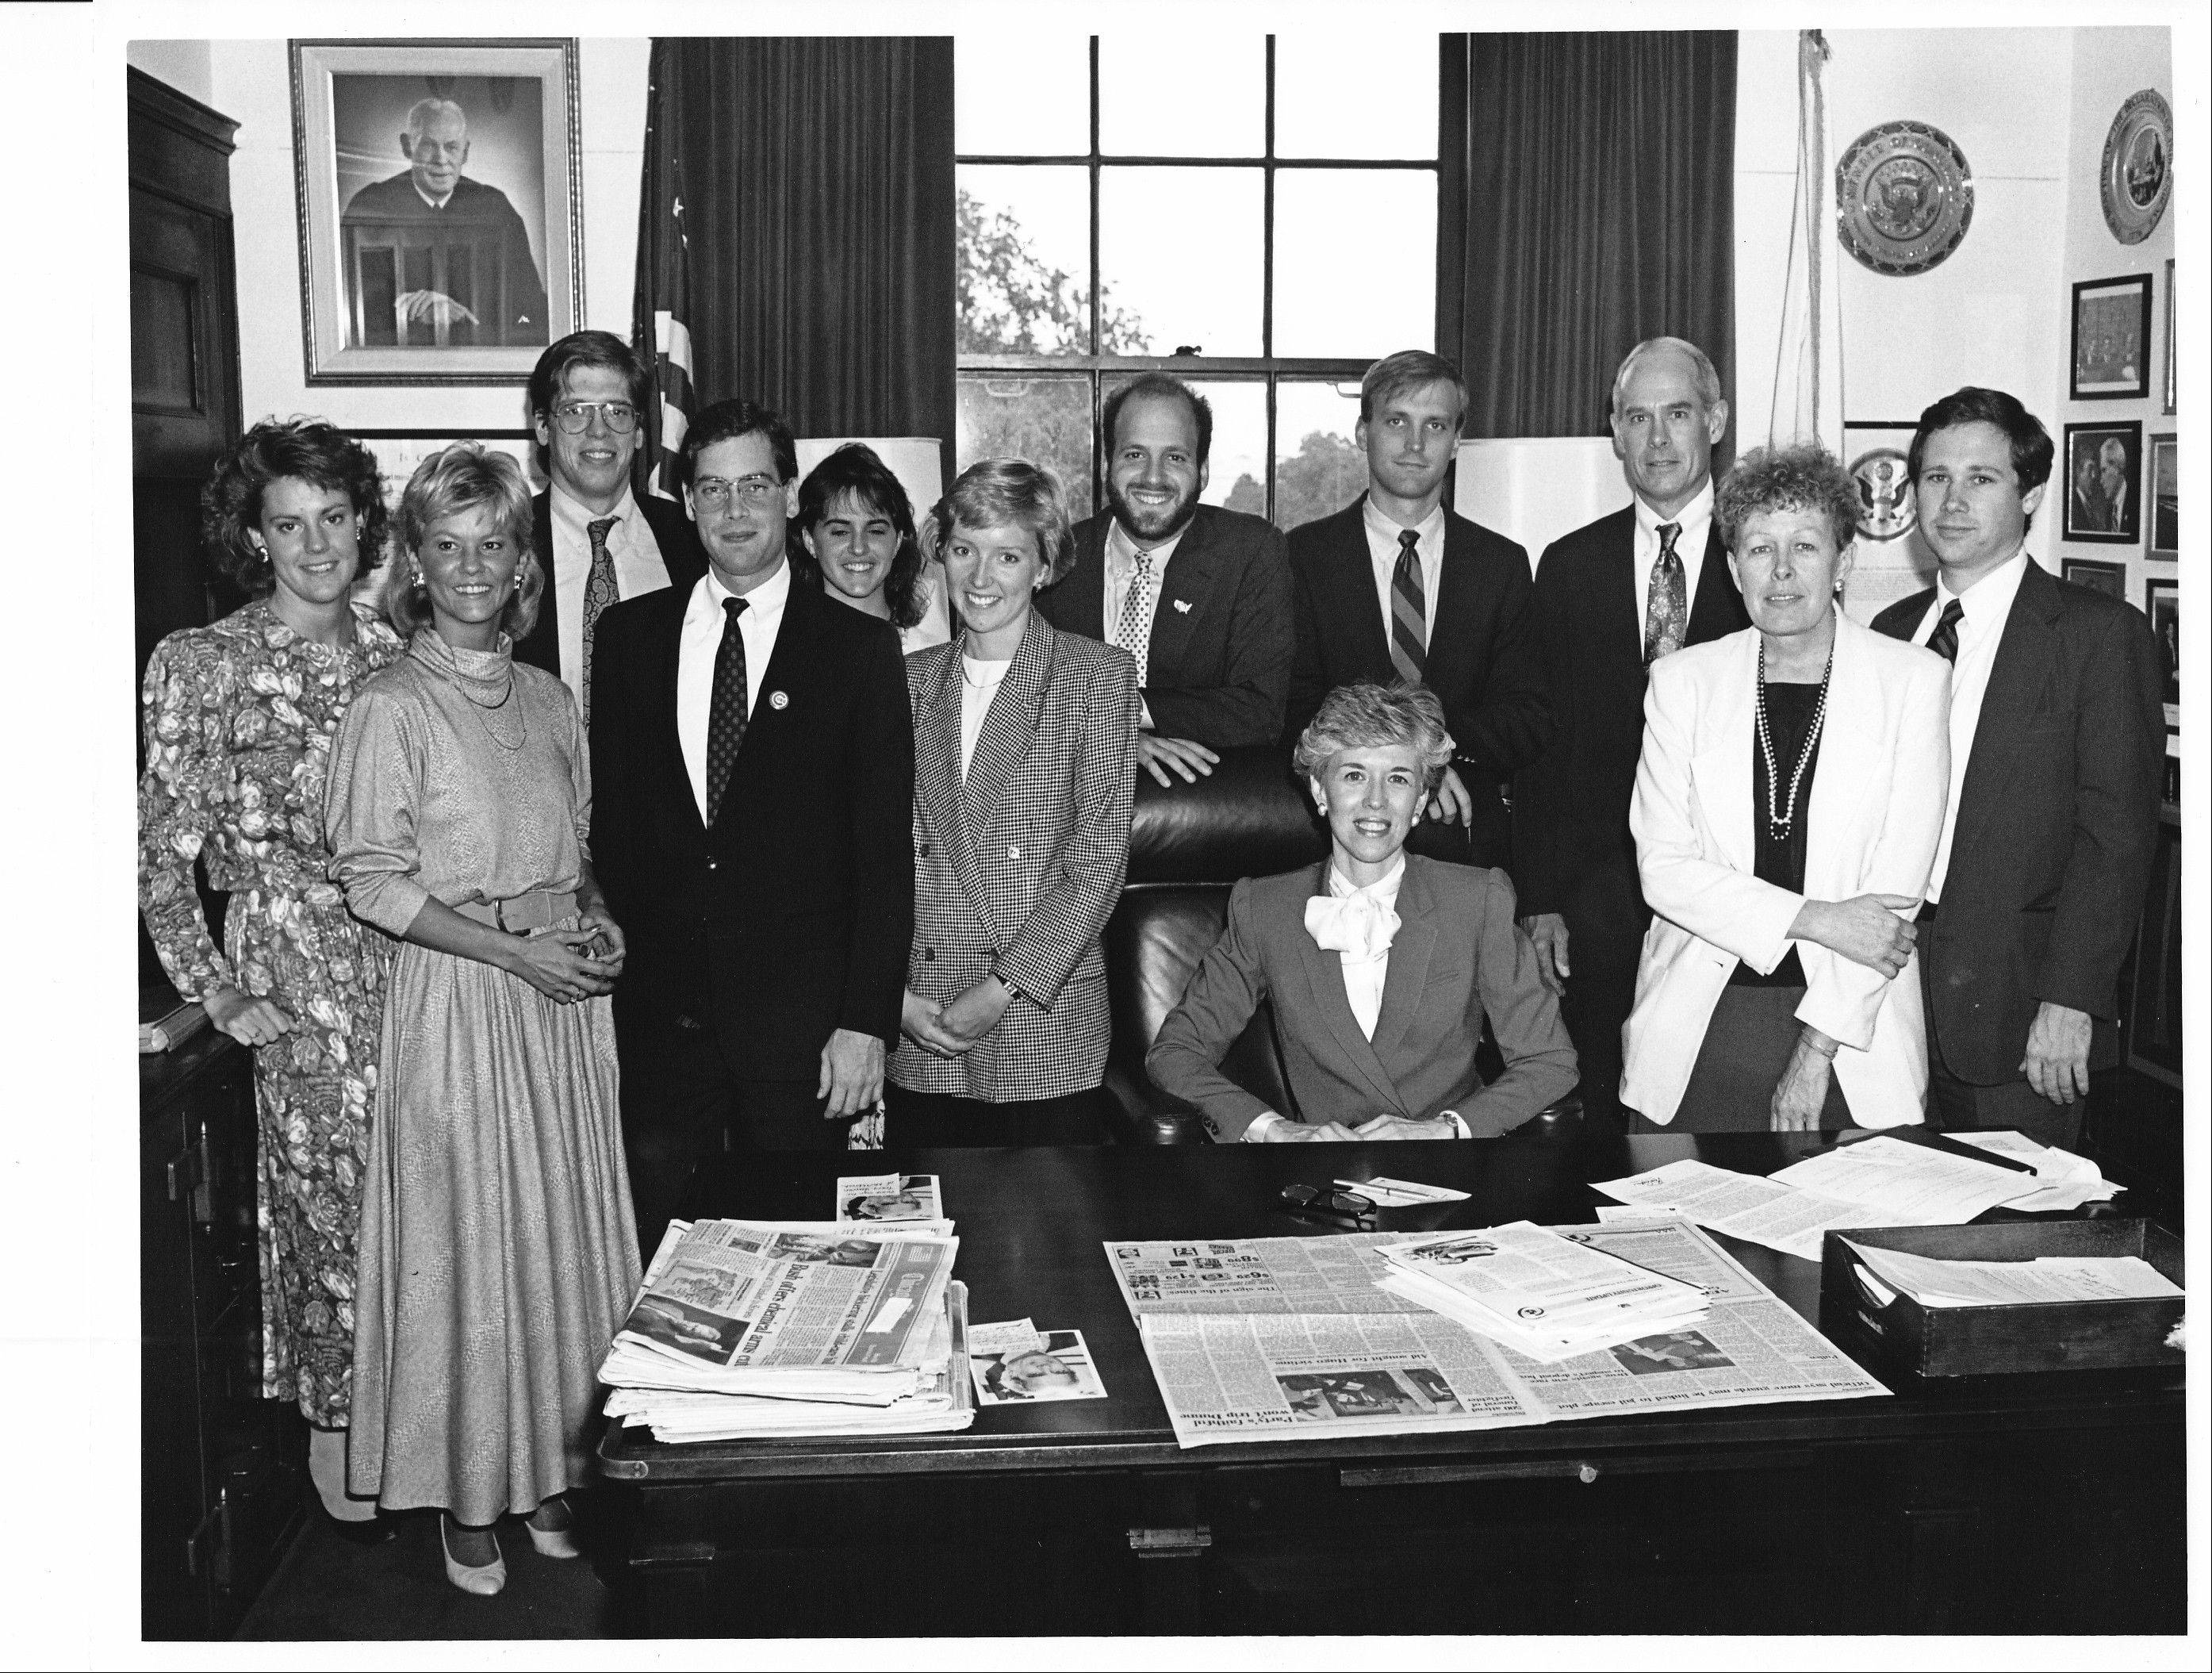 10th District Congressman John Porter's staff in the late 1980s, including now Senator Mark Kirk, to the far right. Former staffers say Kirk's late January stroke reminded them of life's fragility, and caused them to rekindle their friendships.